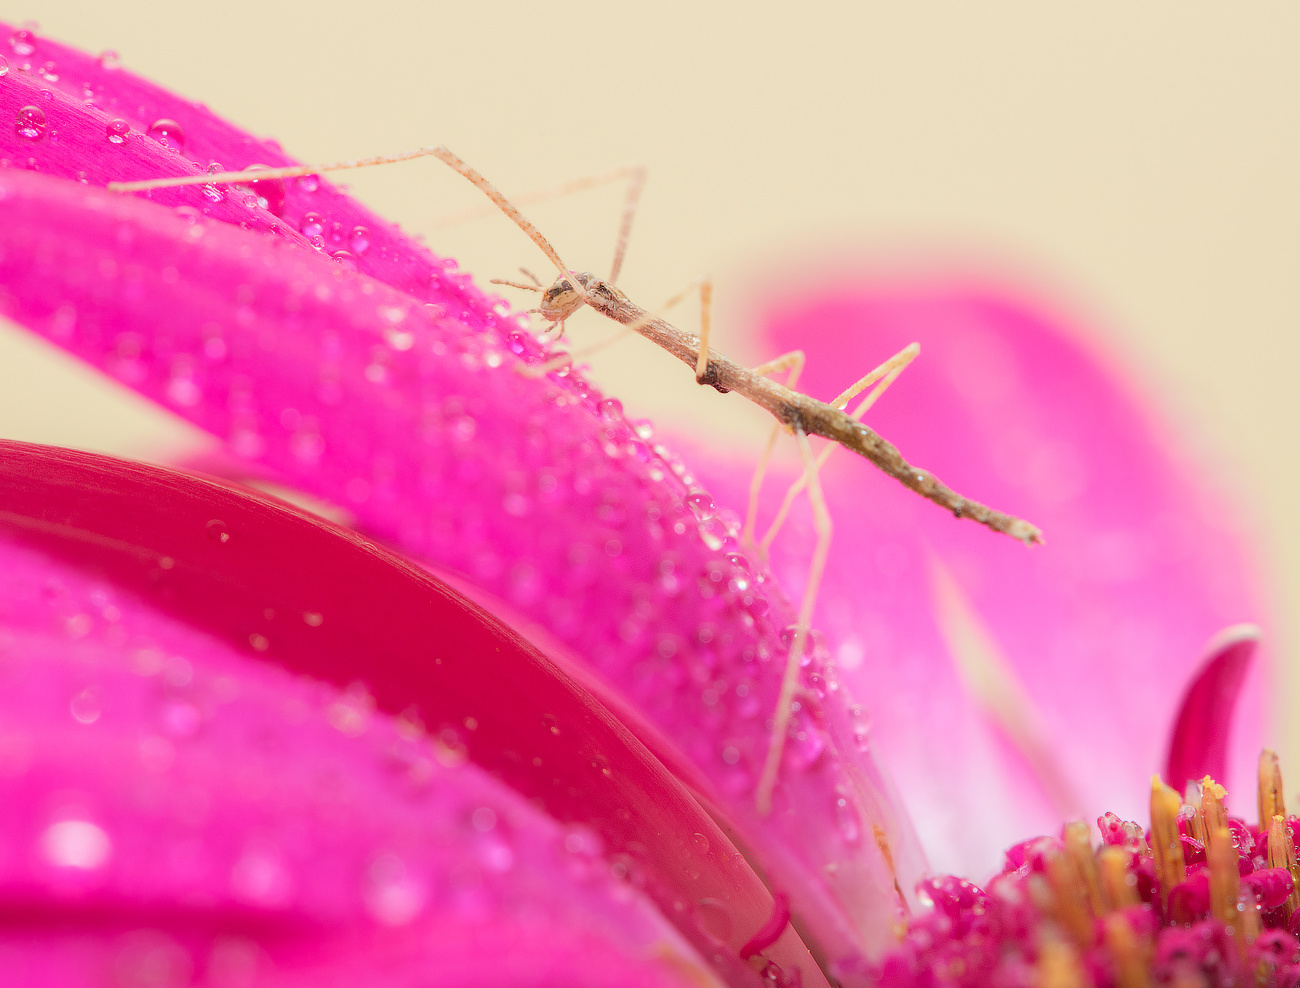 Baby stick-insect (Phasmatodea) by Dmitry A